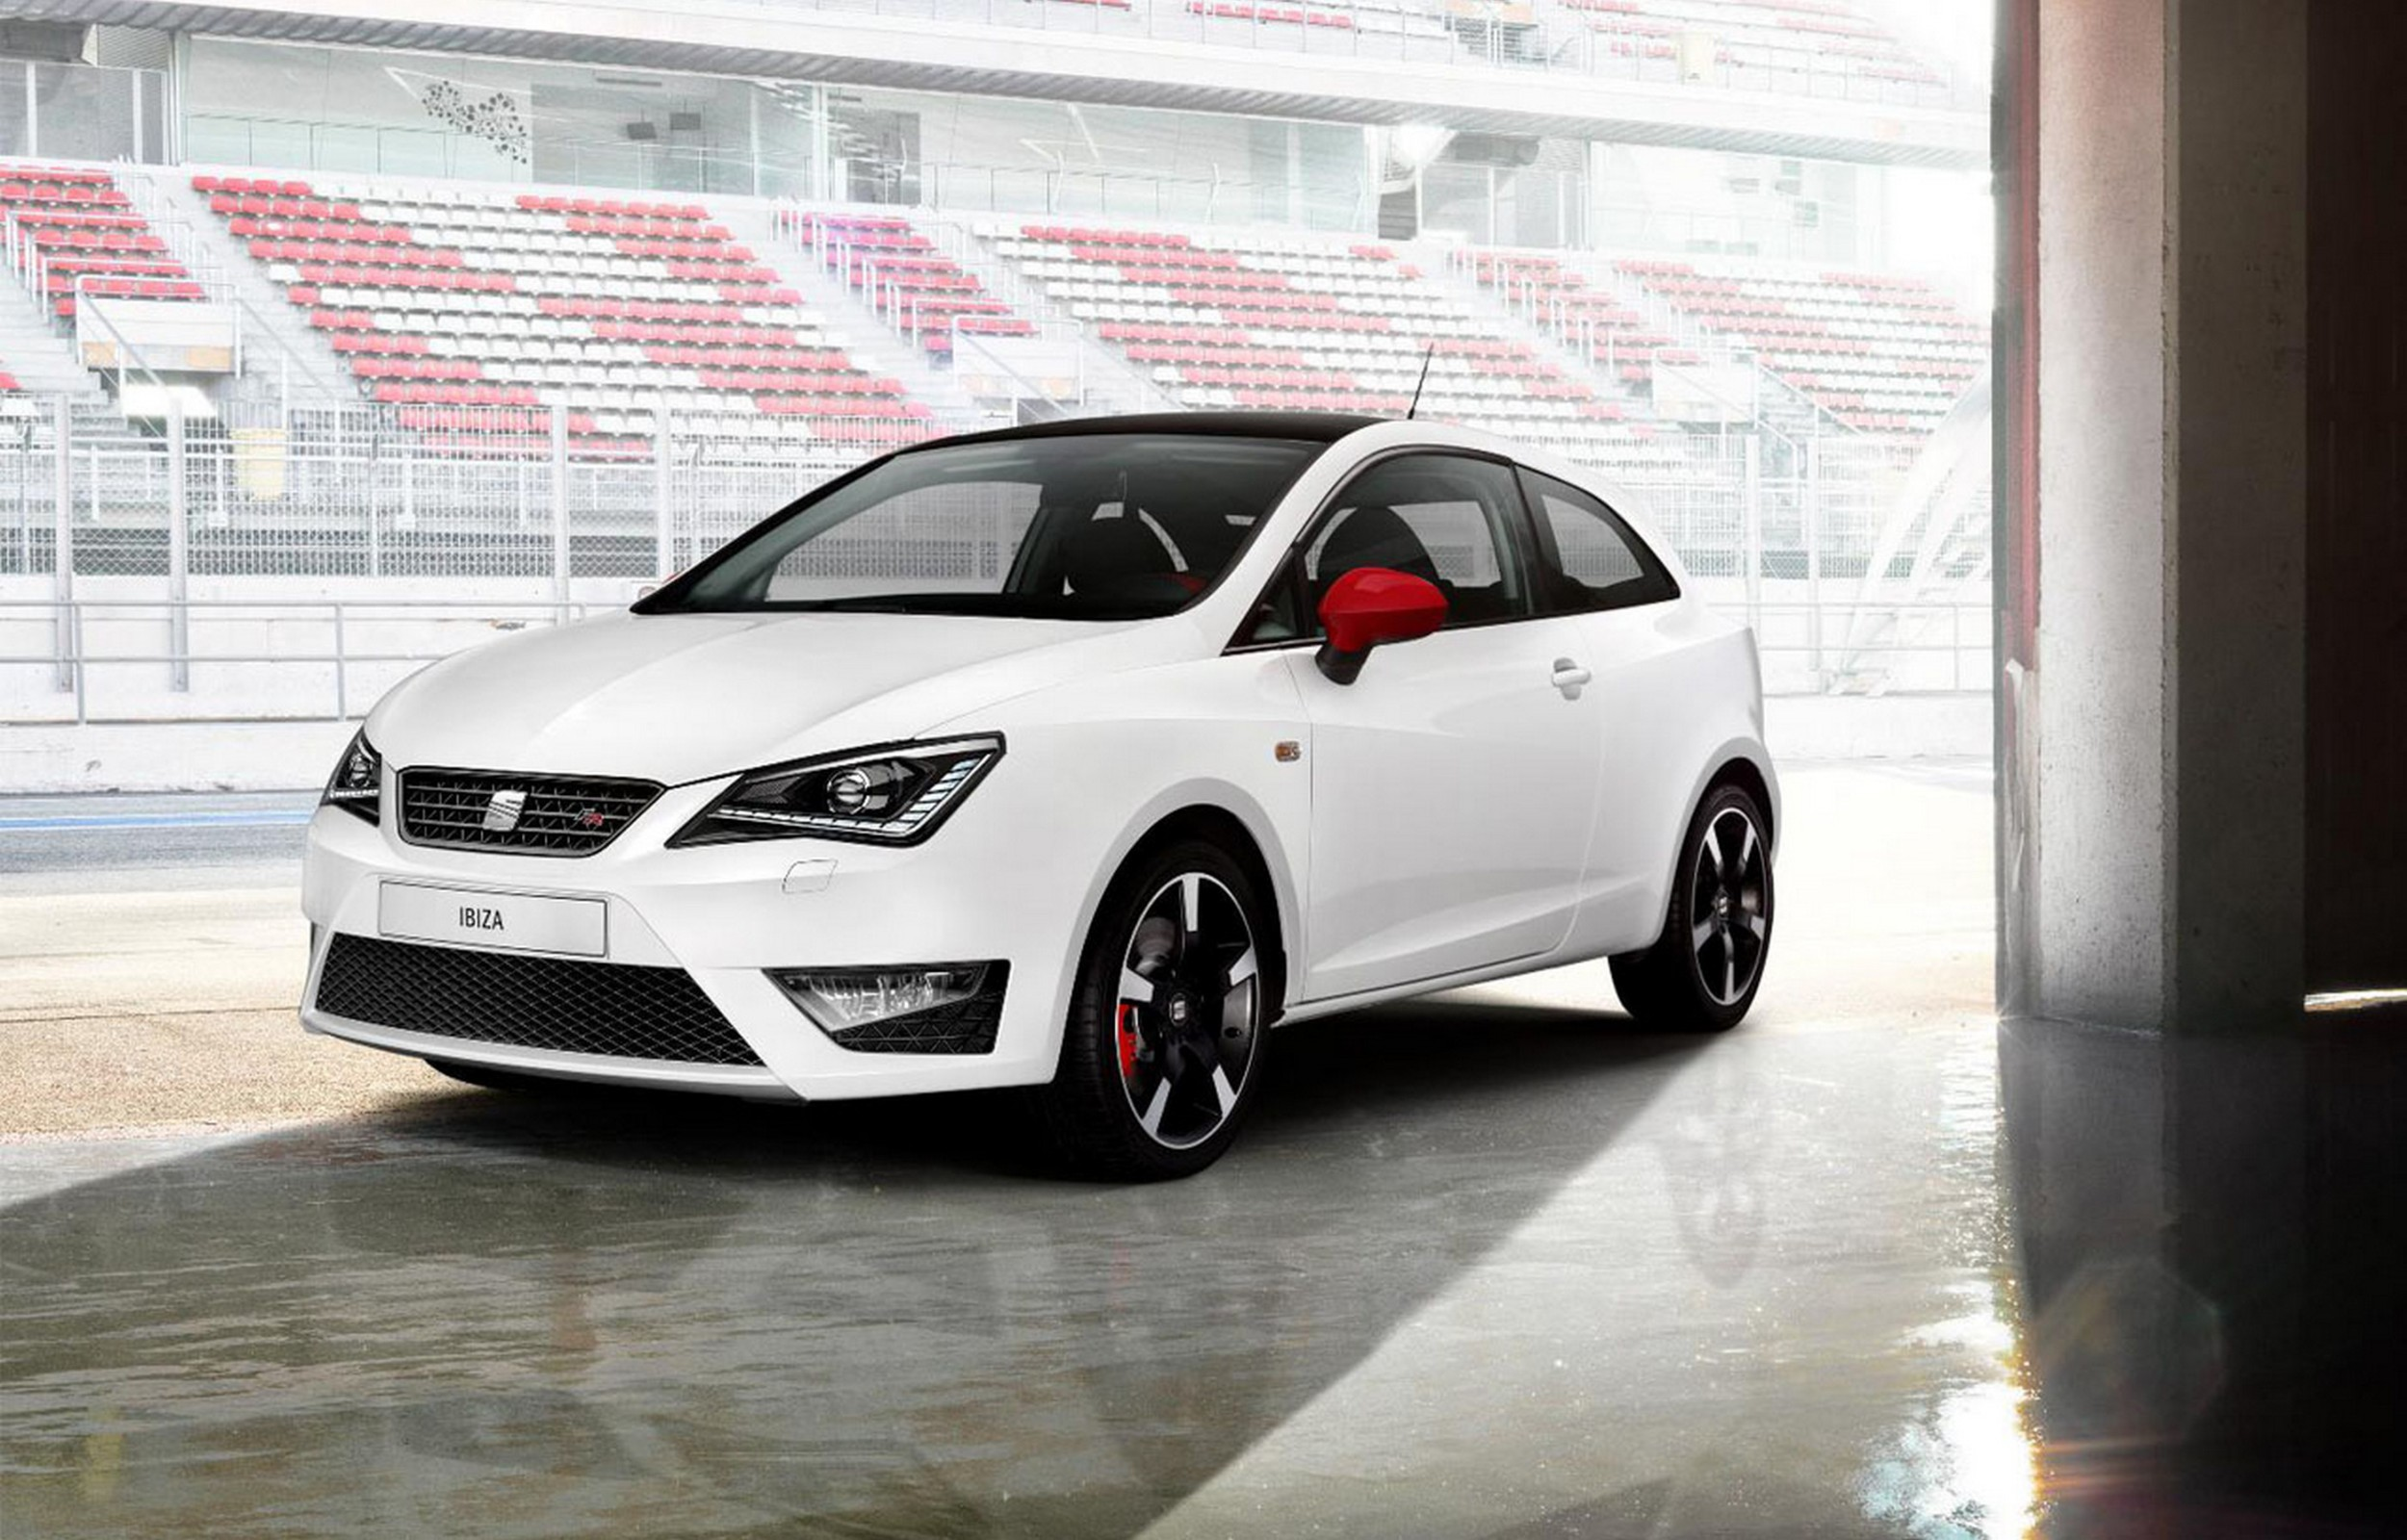 seat ibiza fr 2012 wallpapers 2500x1600 630804. Black Bedroom Furniture Sets. Home Design Ideas